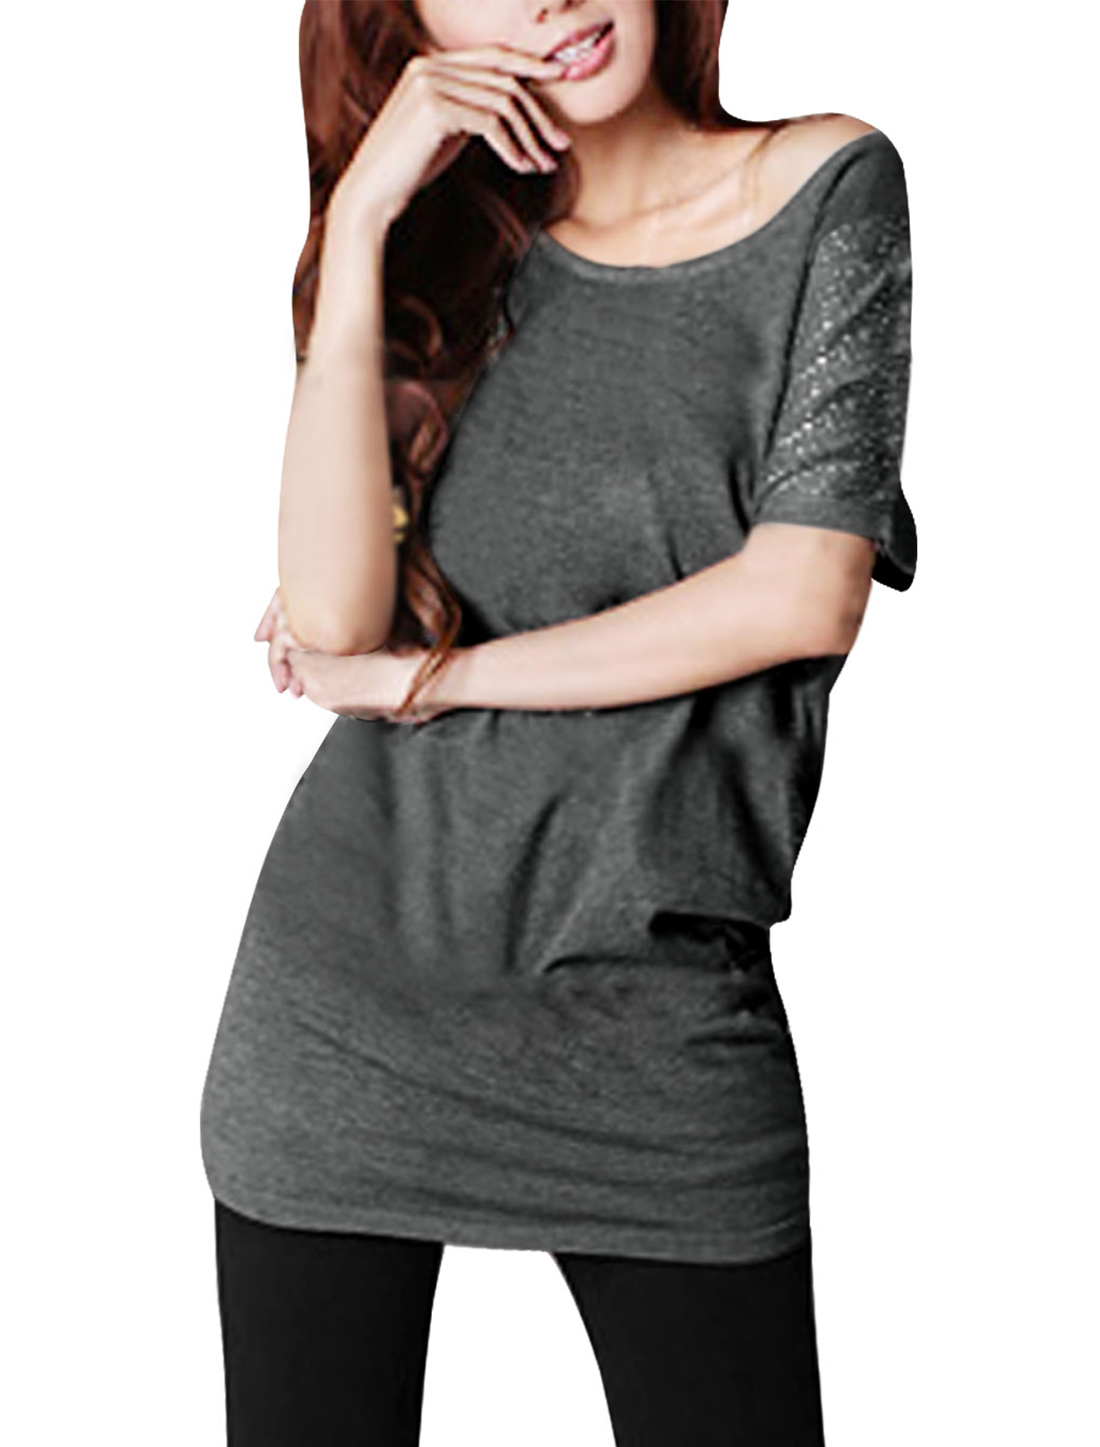 4fa9541aba6 Allegra K Women Clear Crystal Decor Scoop Neck Bat Sleeve Tunic Shirt-in  T-Shirts from Women s Clothing on Aliexpress.com